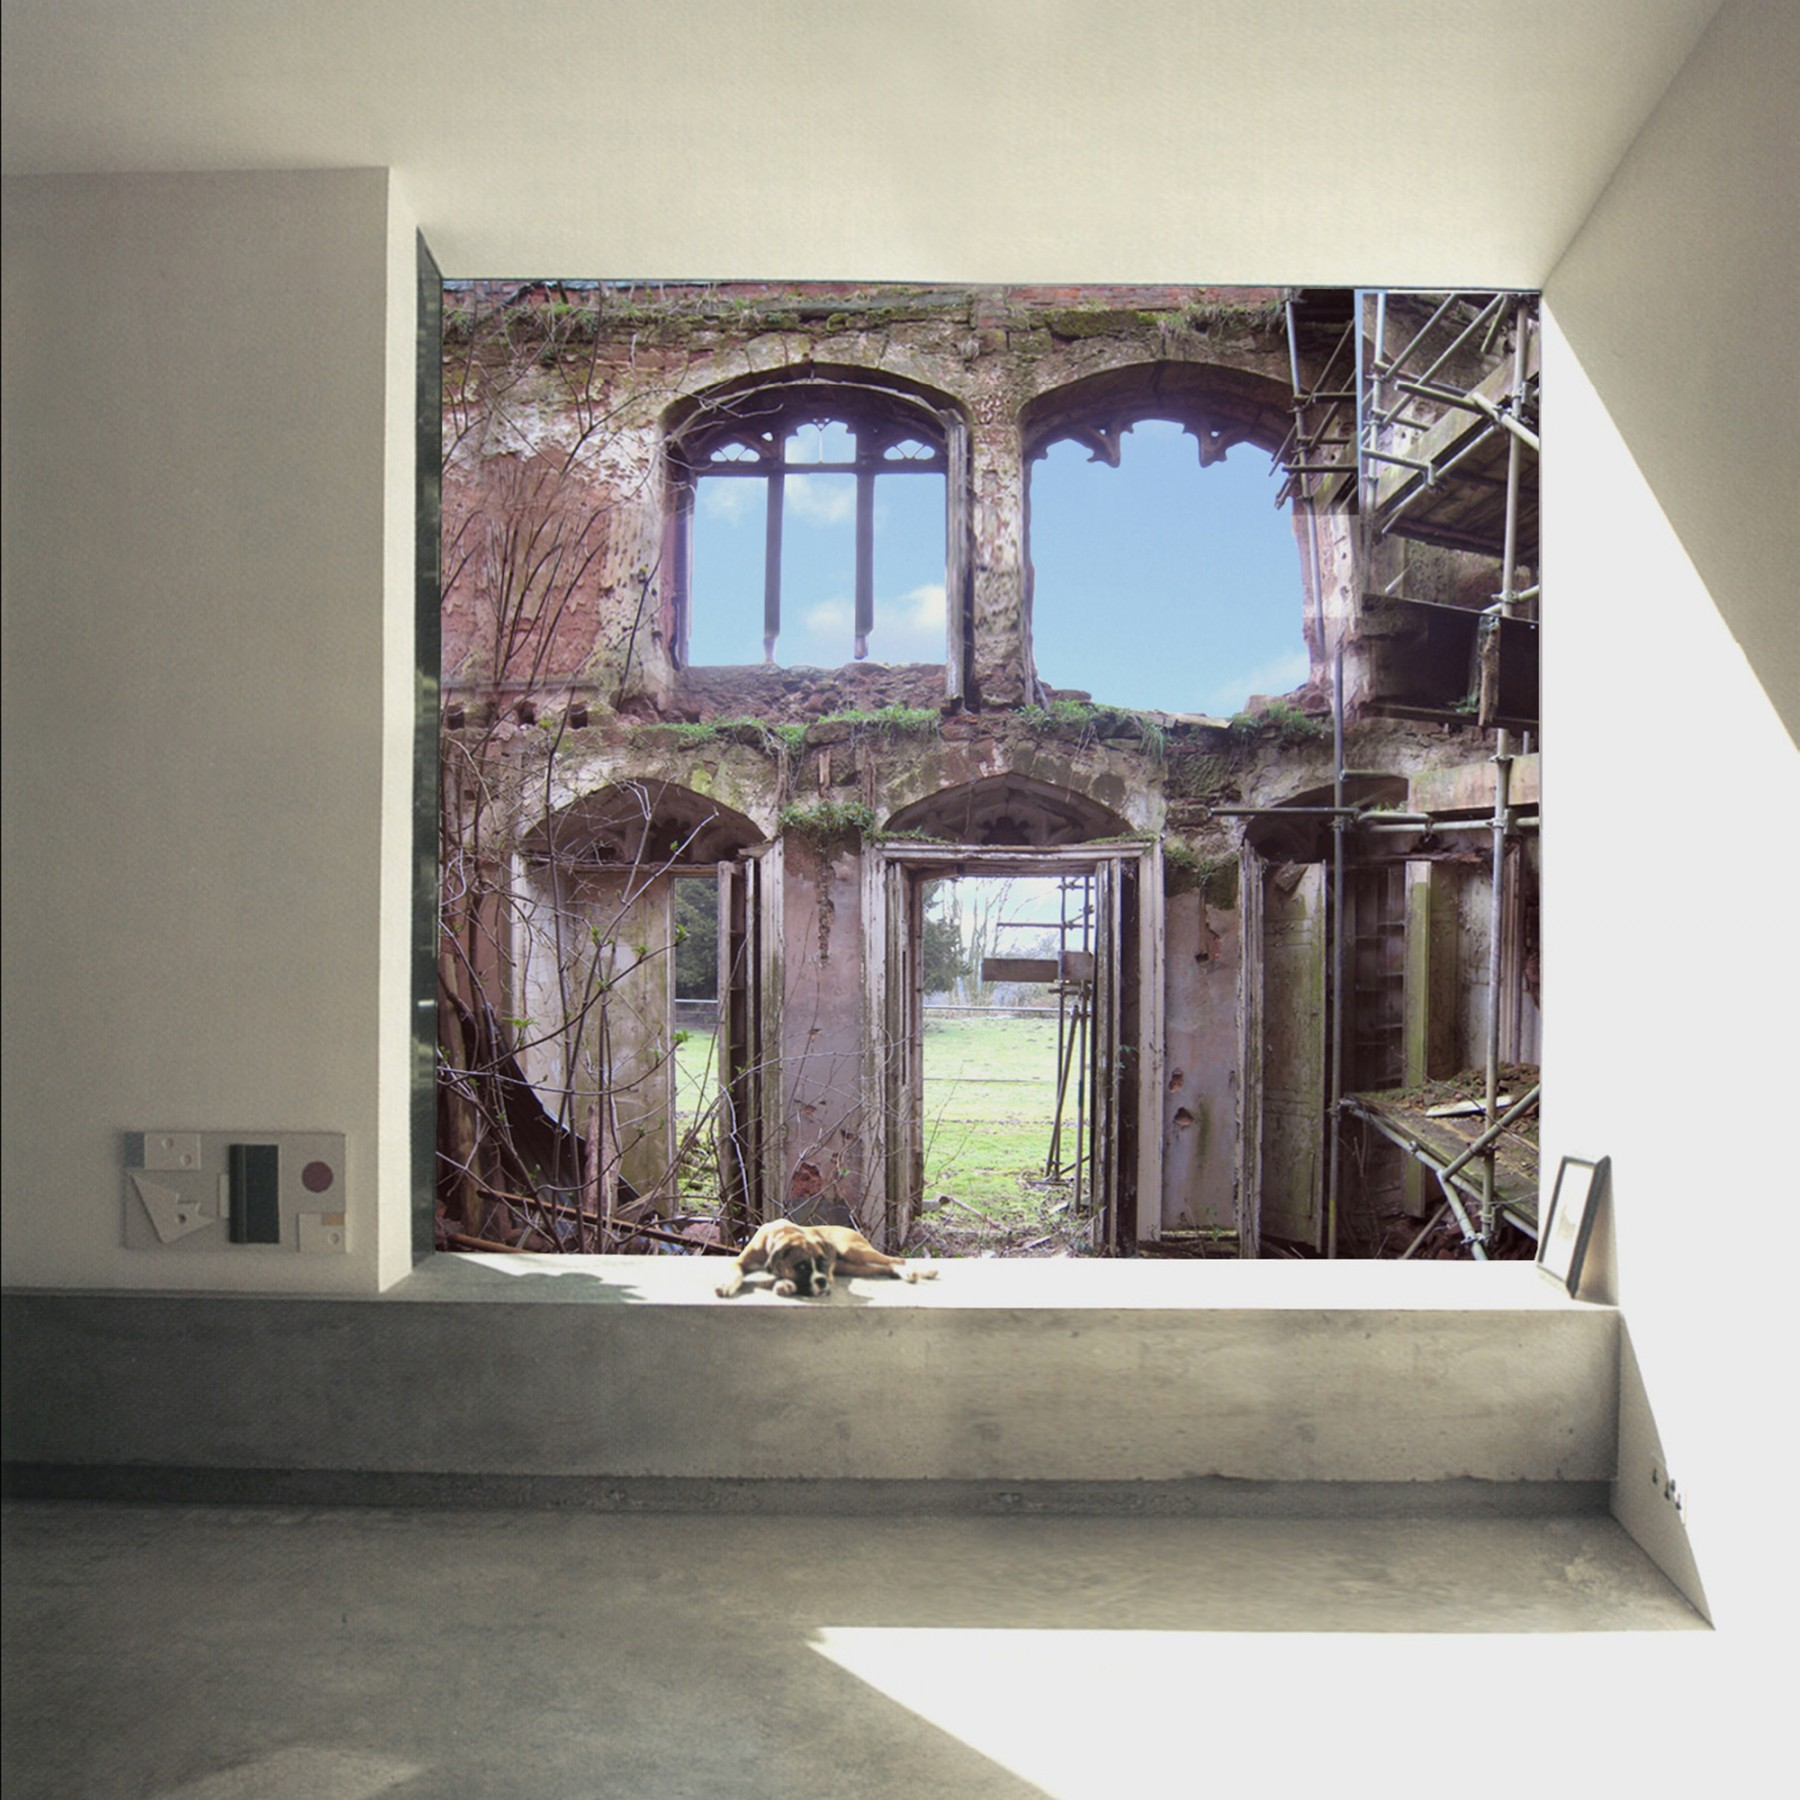 Astley-Castle-competition-accomodation-Nuneaton-Warwickshire-Landmark-trust-English-Heritage-short-list-Jamie-Fobert-architects-2